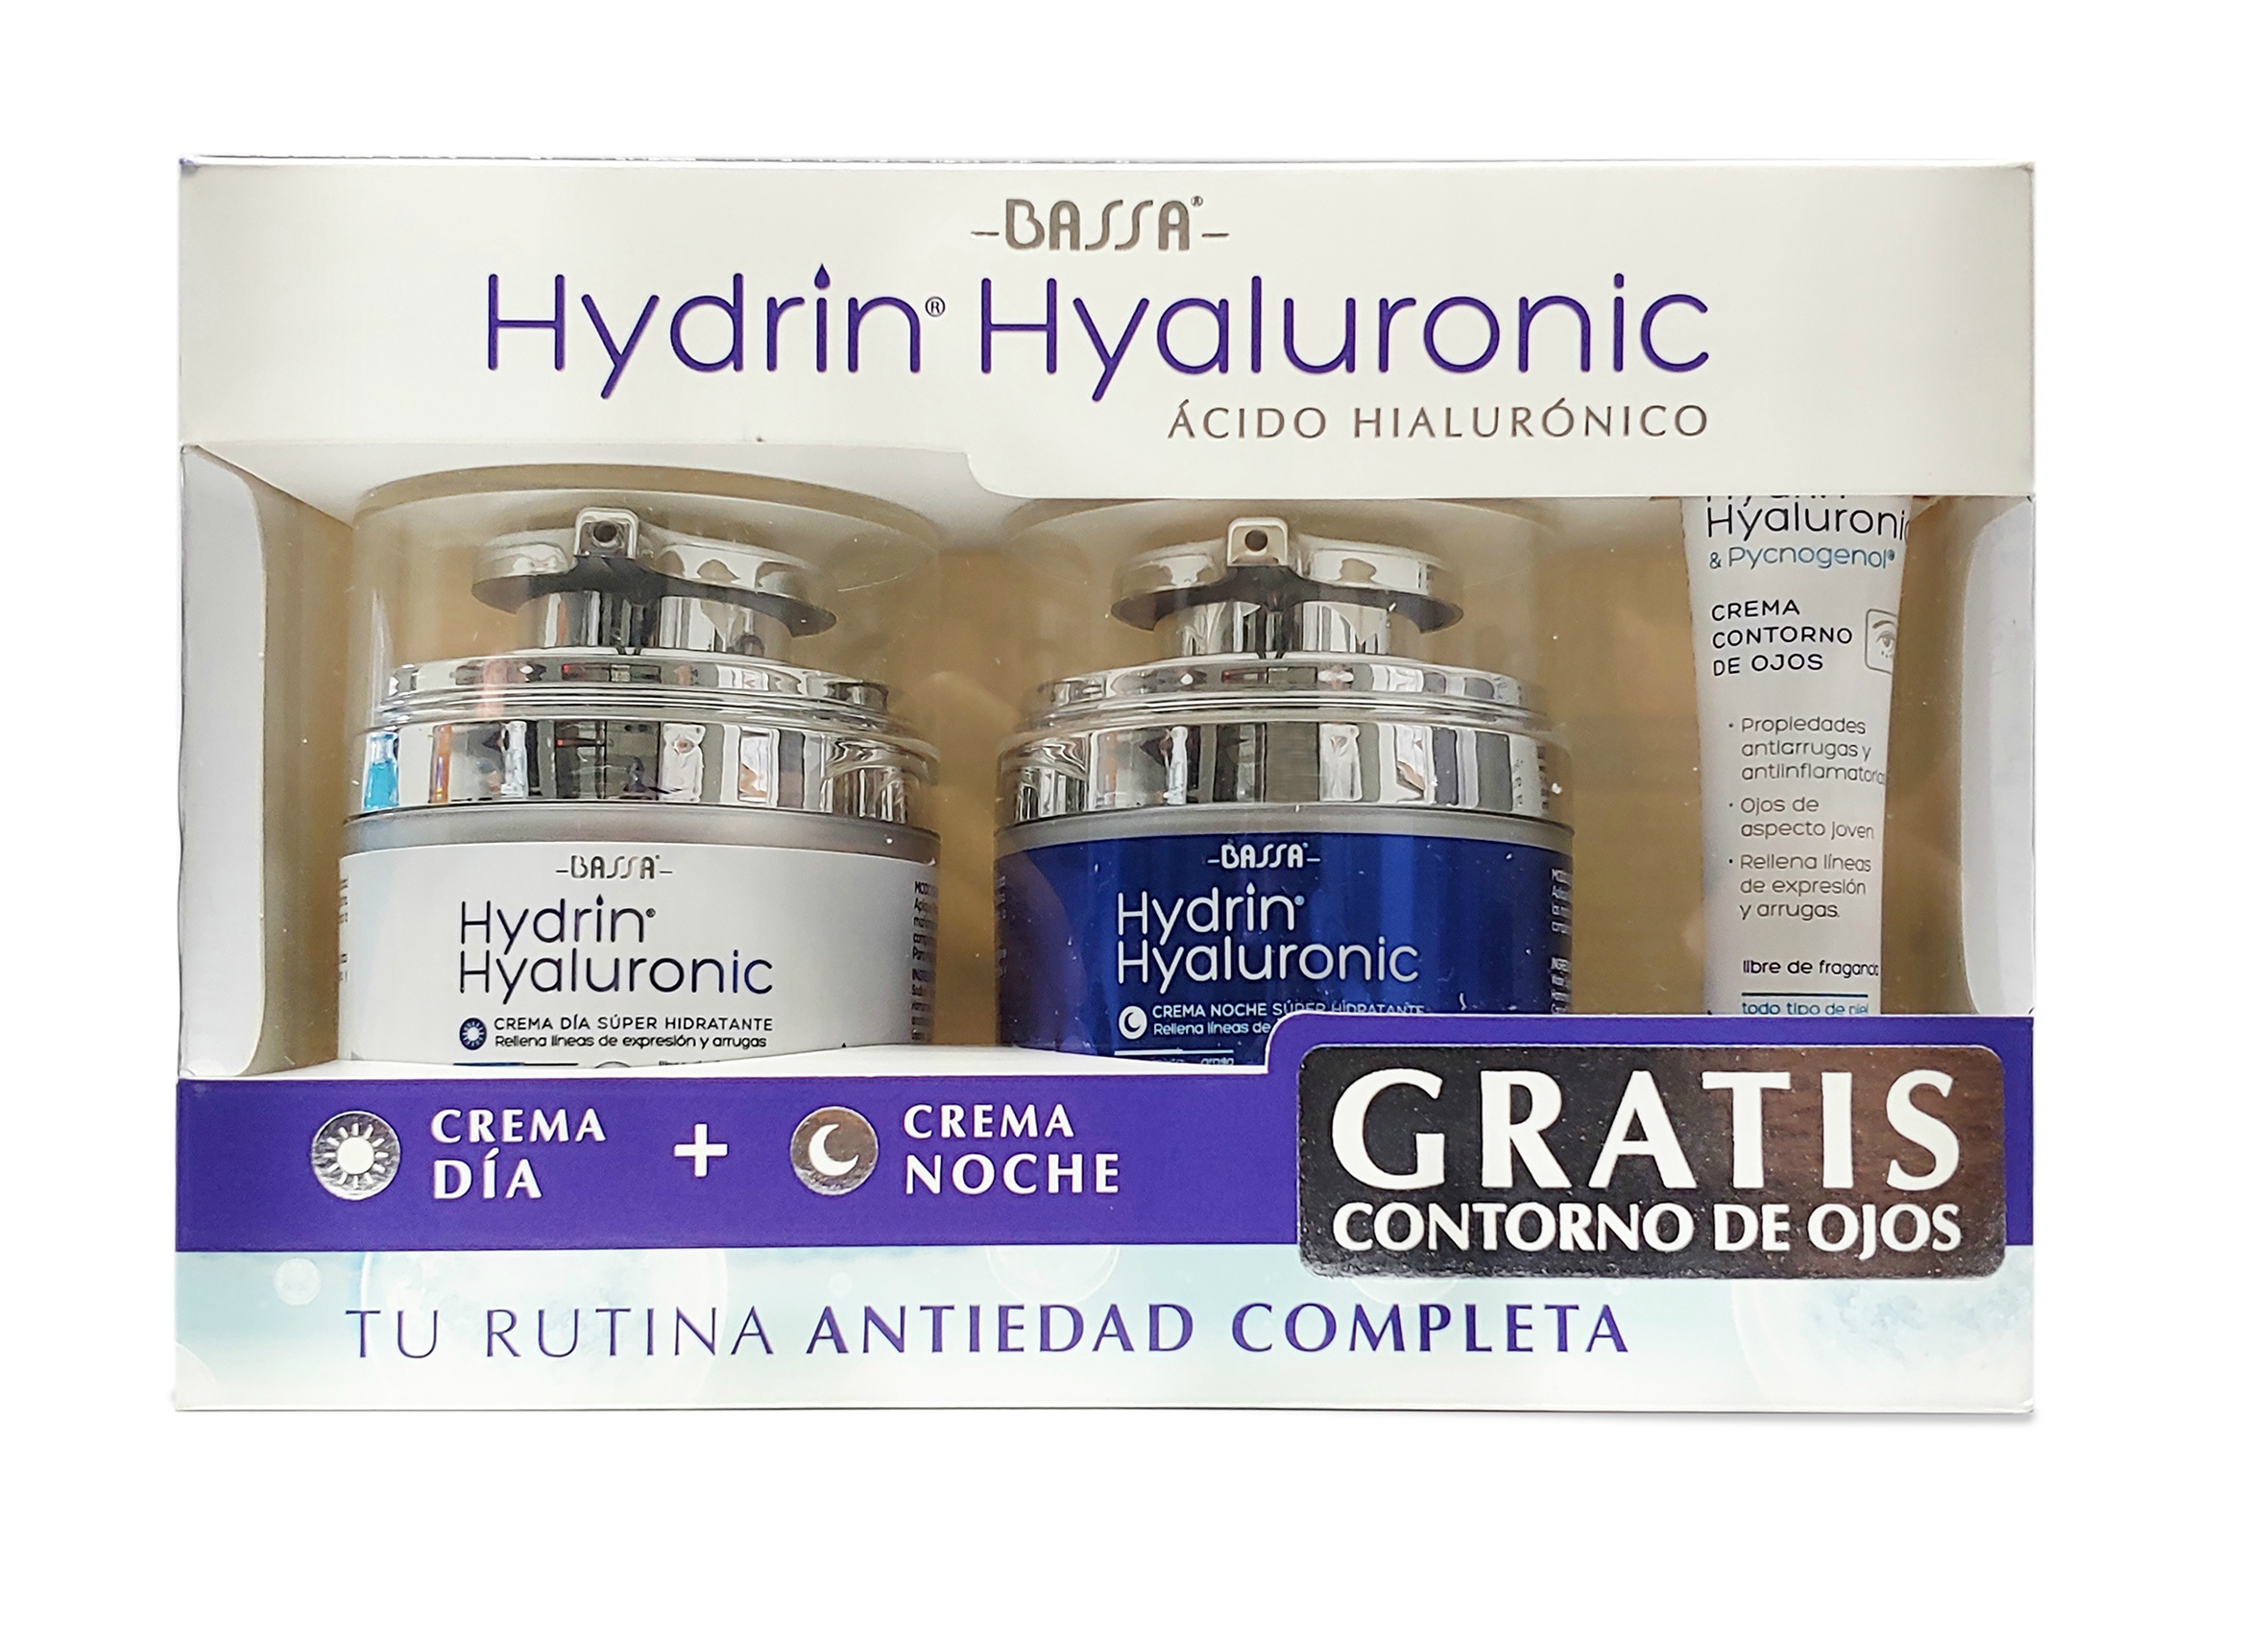 Kit Hydrin Hyaluronic (Día + Noche + Contorno)